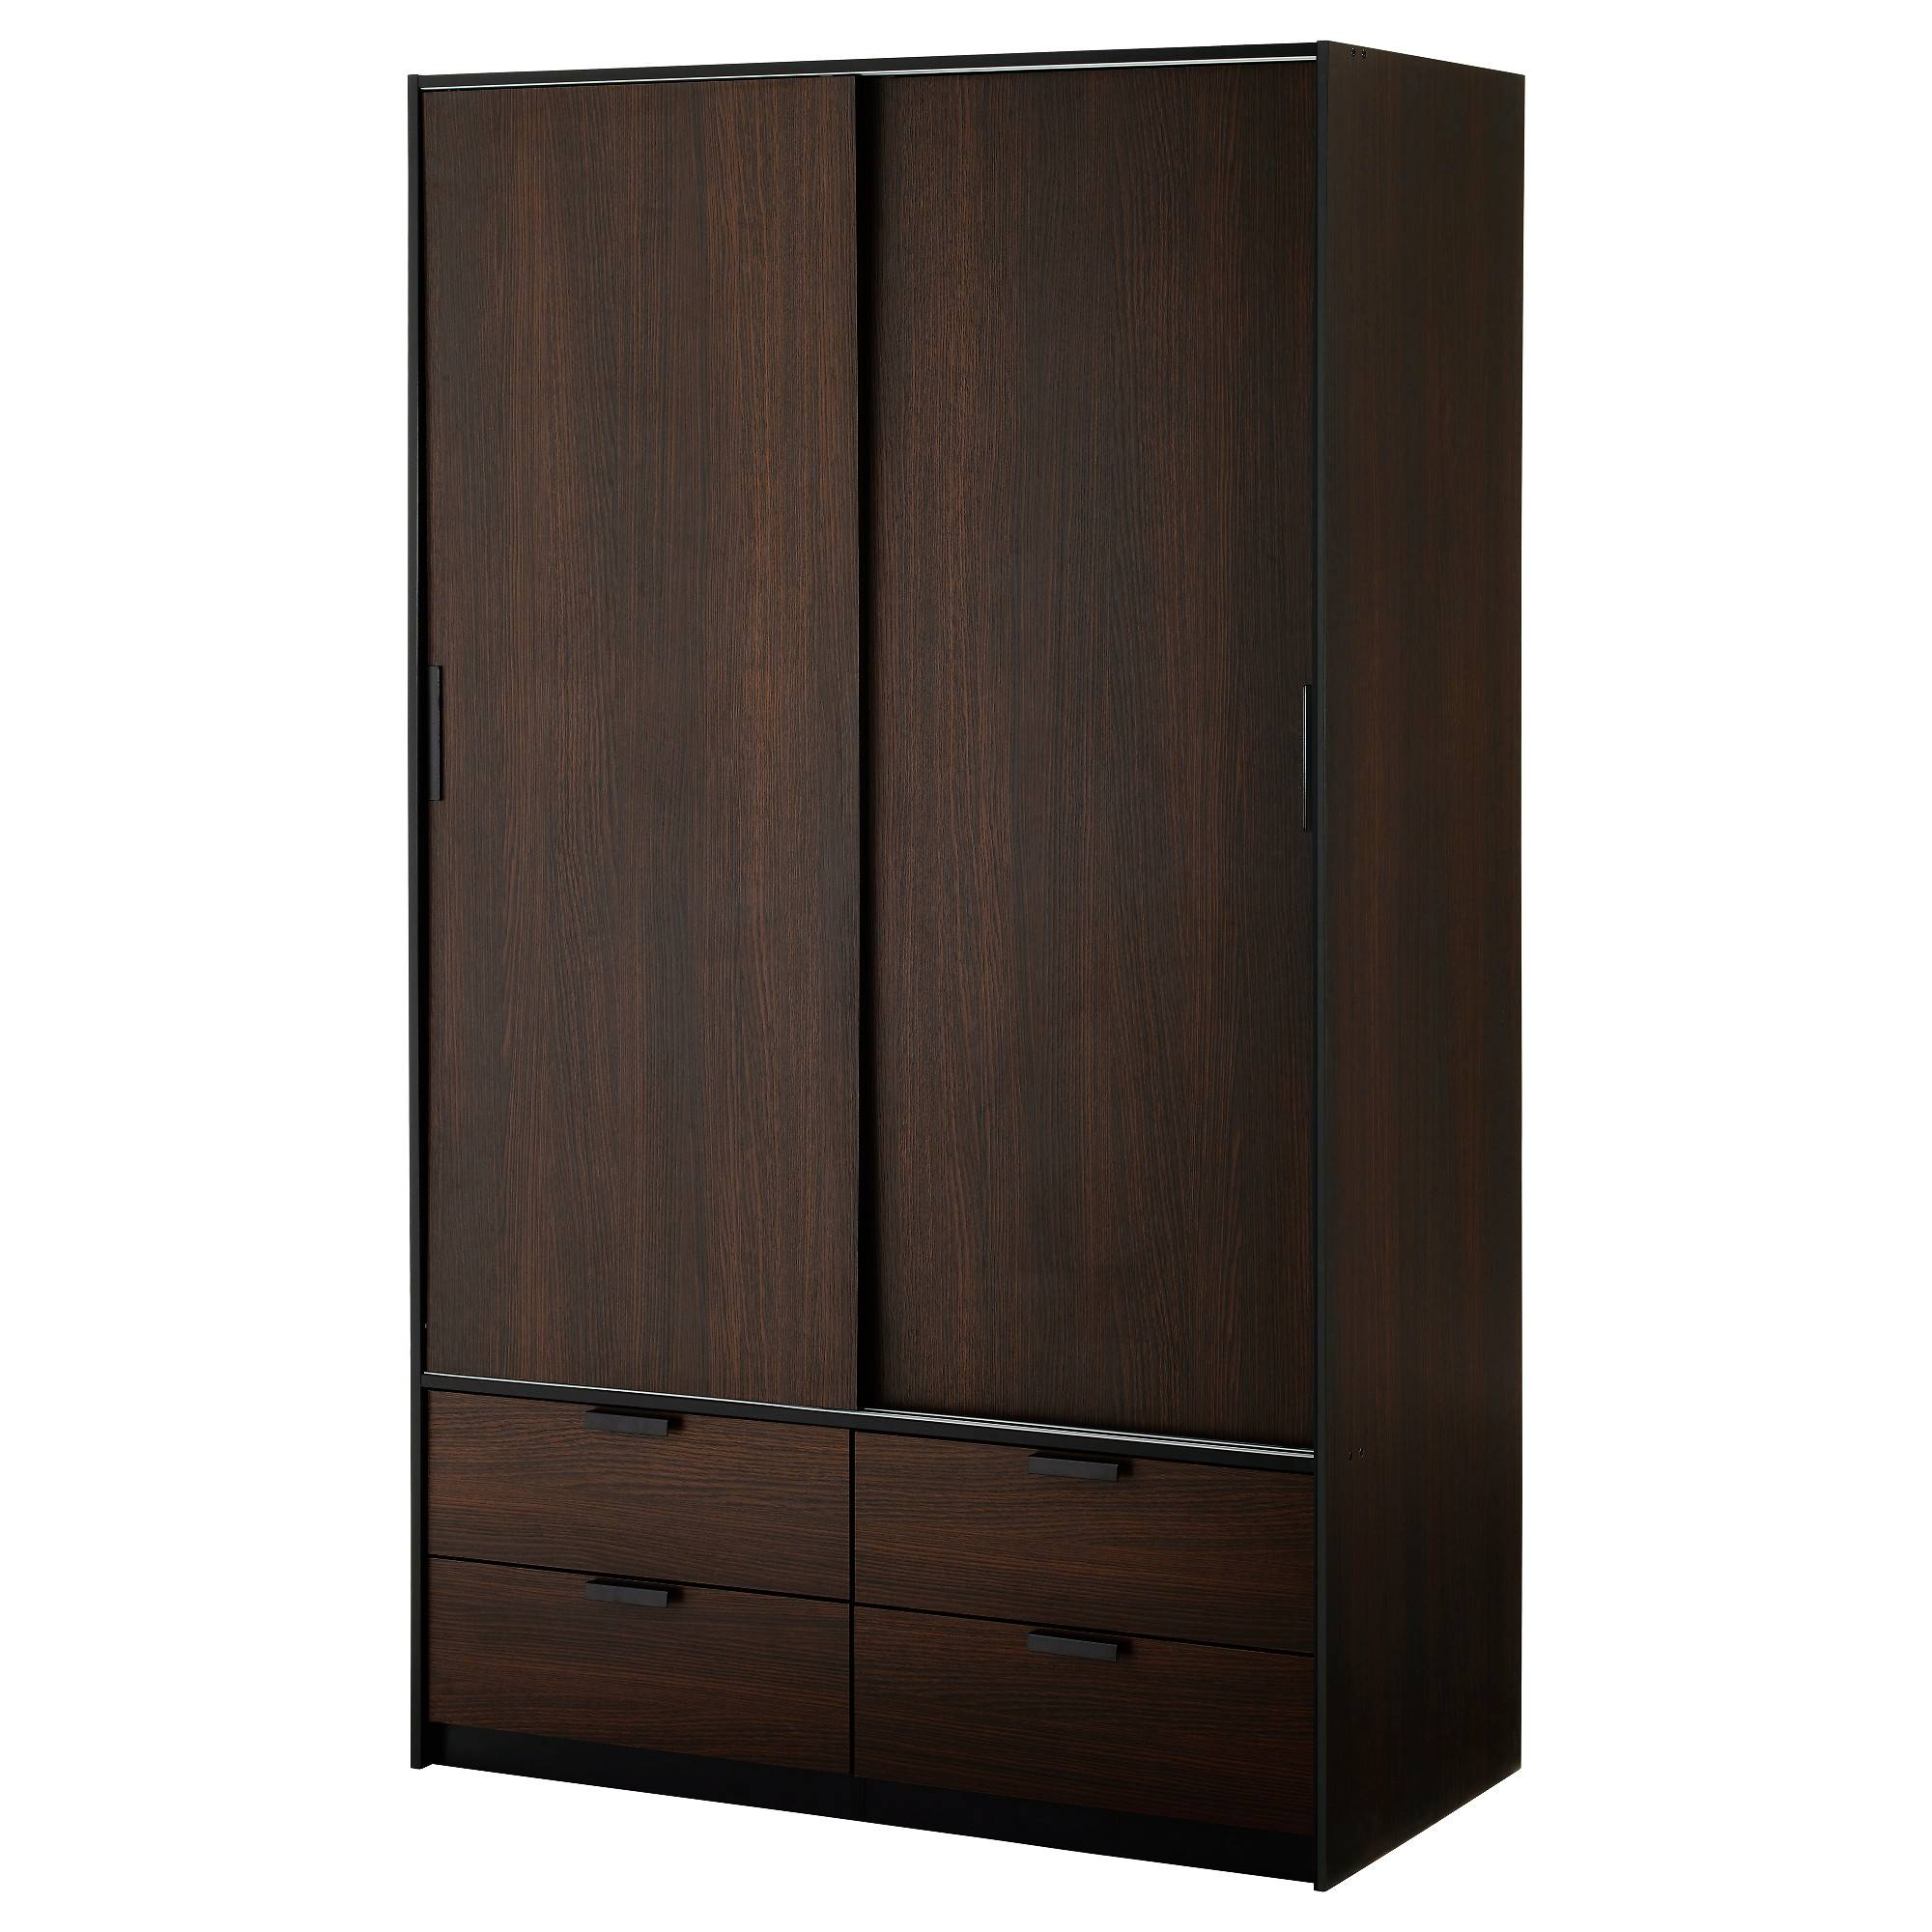 Wardrobes | Ikea Ireland - Dublin intended for Solid Dark Wood Wardrobes (Image 29 of 30)